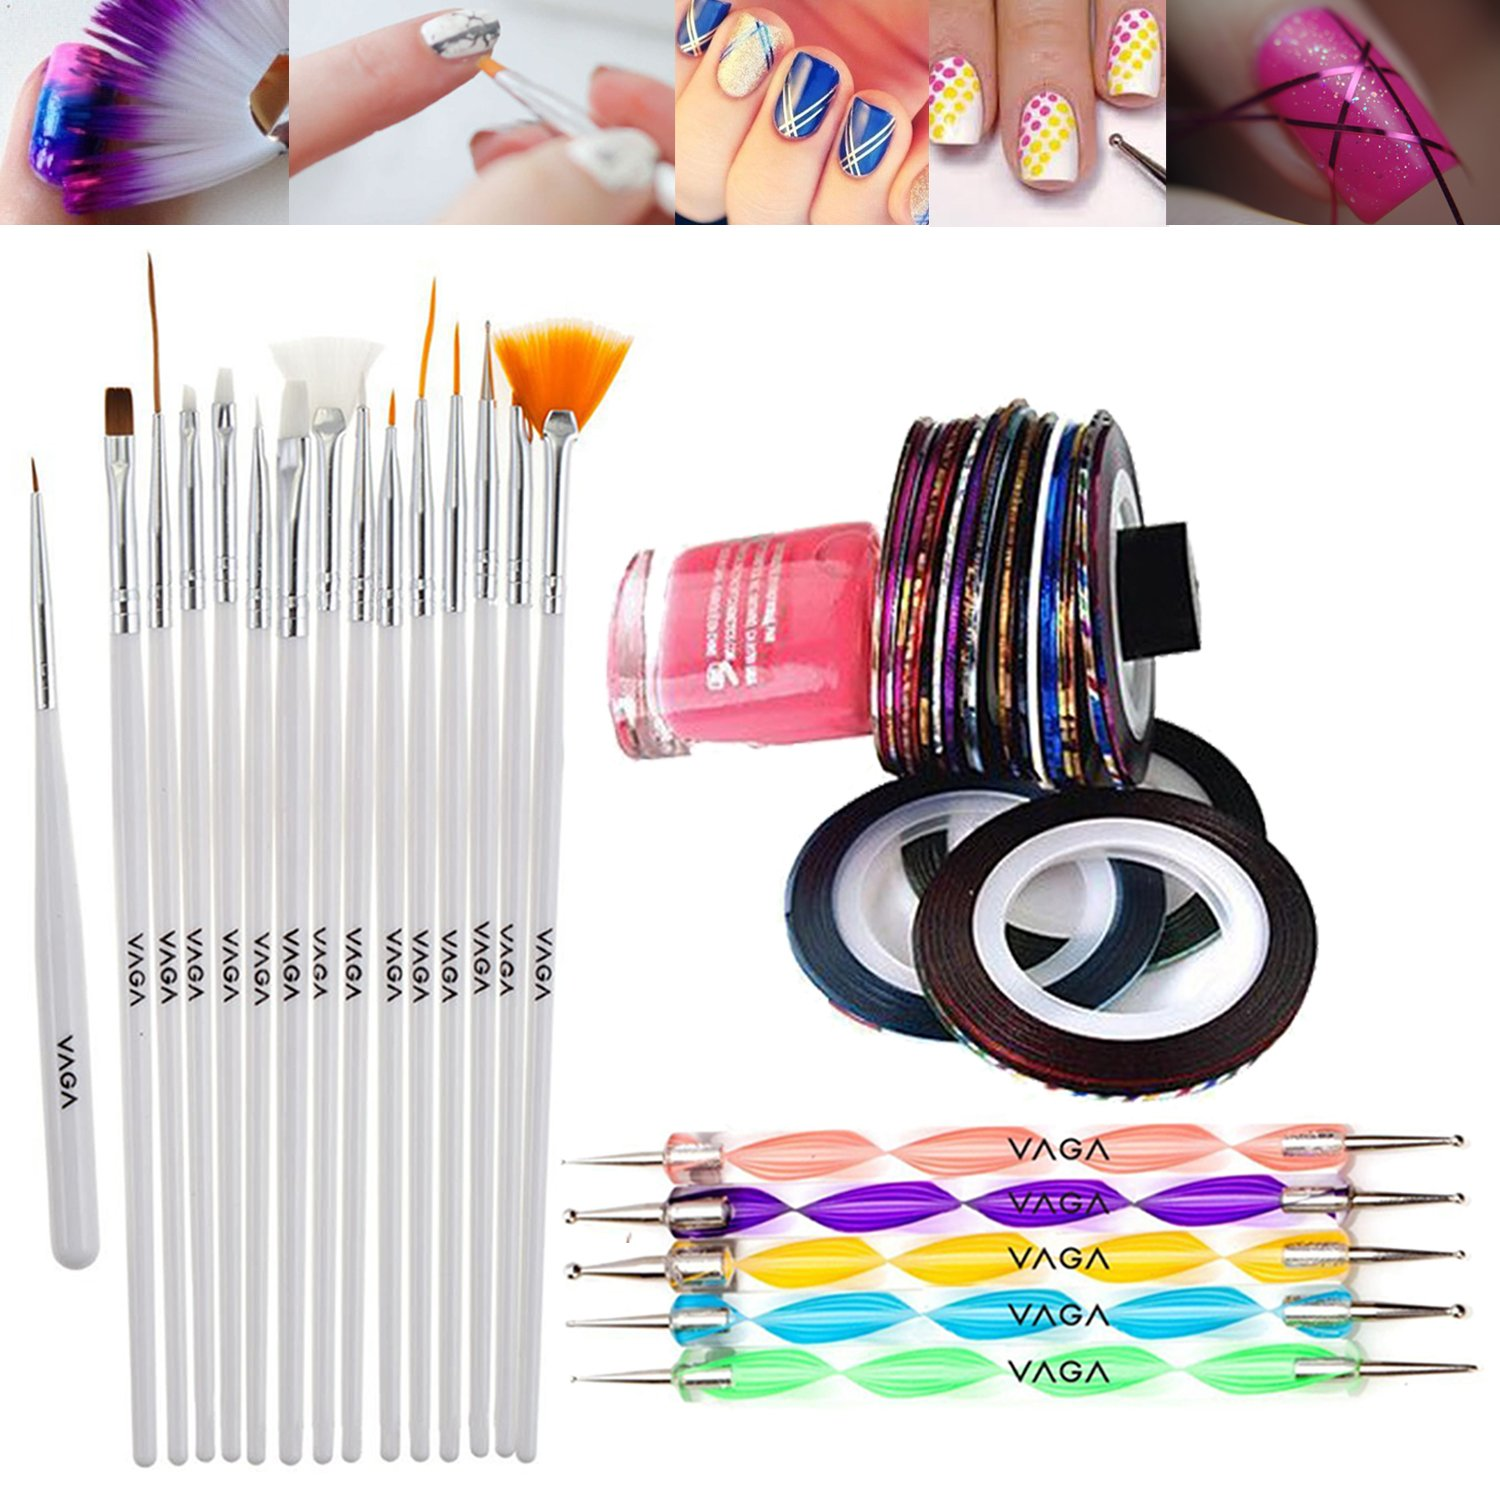 Premium Quality Professional Nail Art Set Kit With 5 Double Ended Dotters / Dotting / Marbling Tools And 10 Rolls Striping Tape / Lines Decorations Strips And 15 Brushes / Liners By VAGA